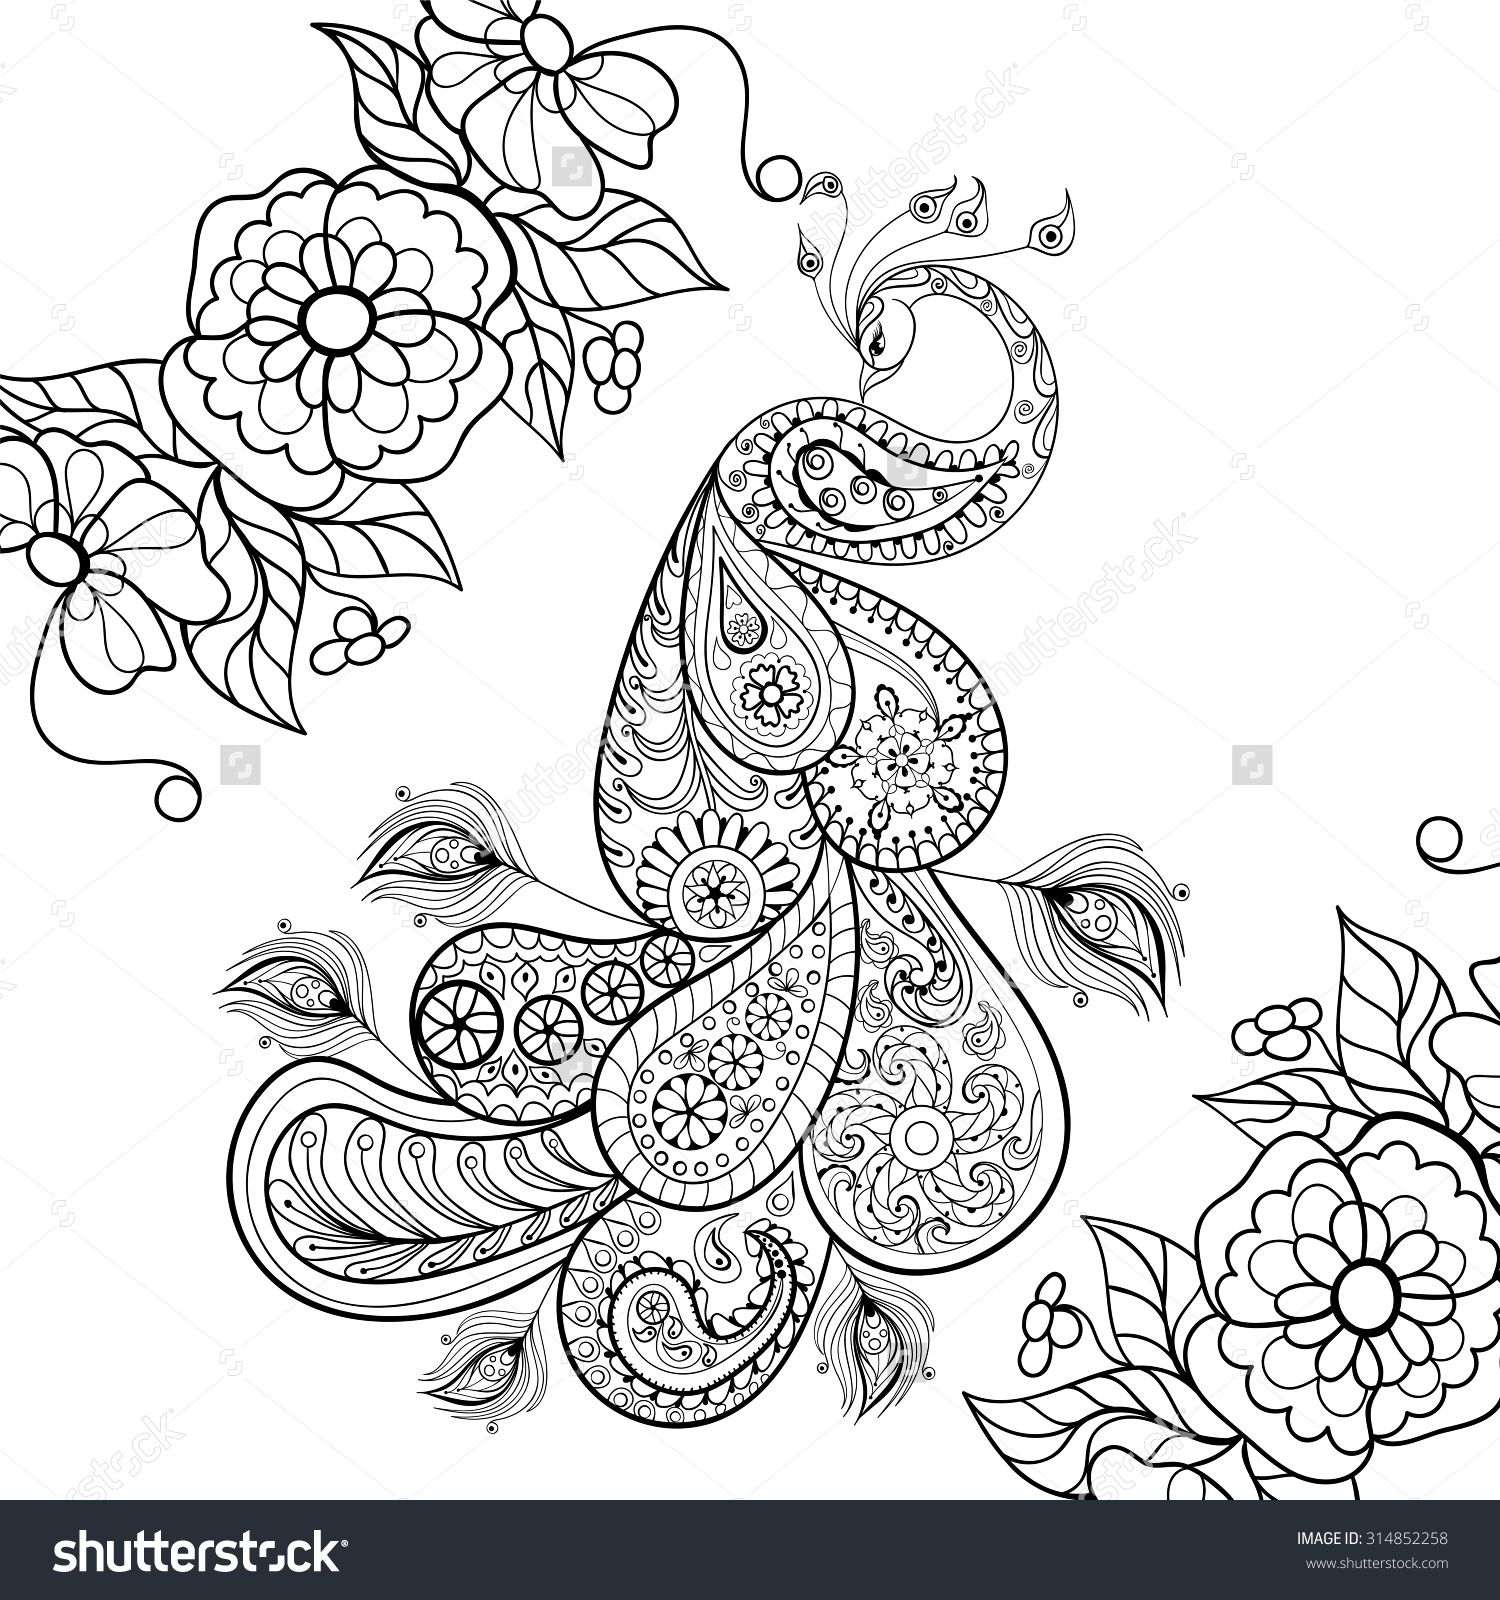 Image result for peacock animal adult colouring | Designs ...